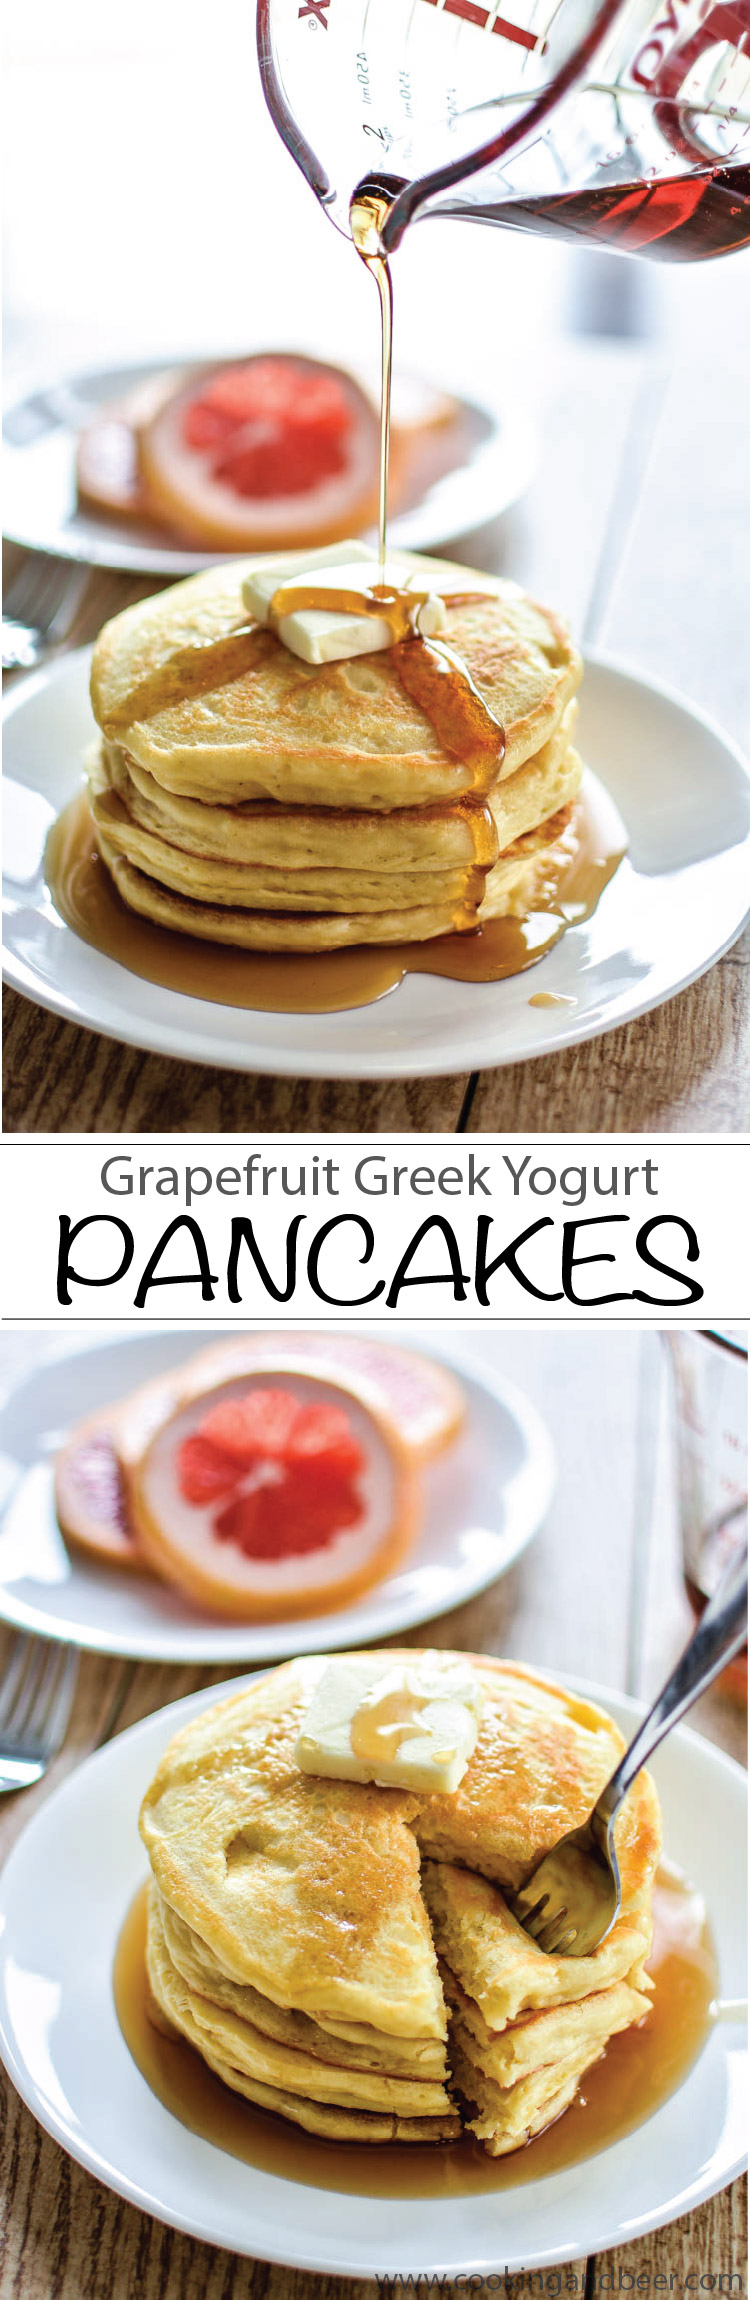 Grapefruit Greek Yogurt Pancakes | www.cookingandbeer.com